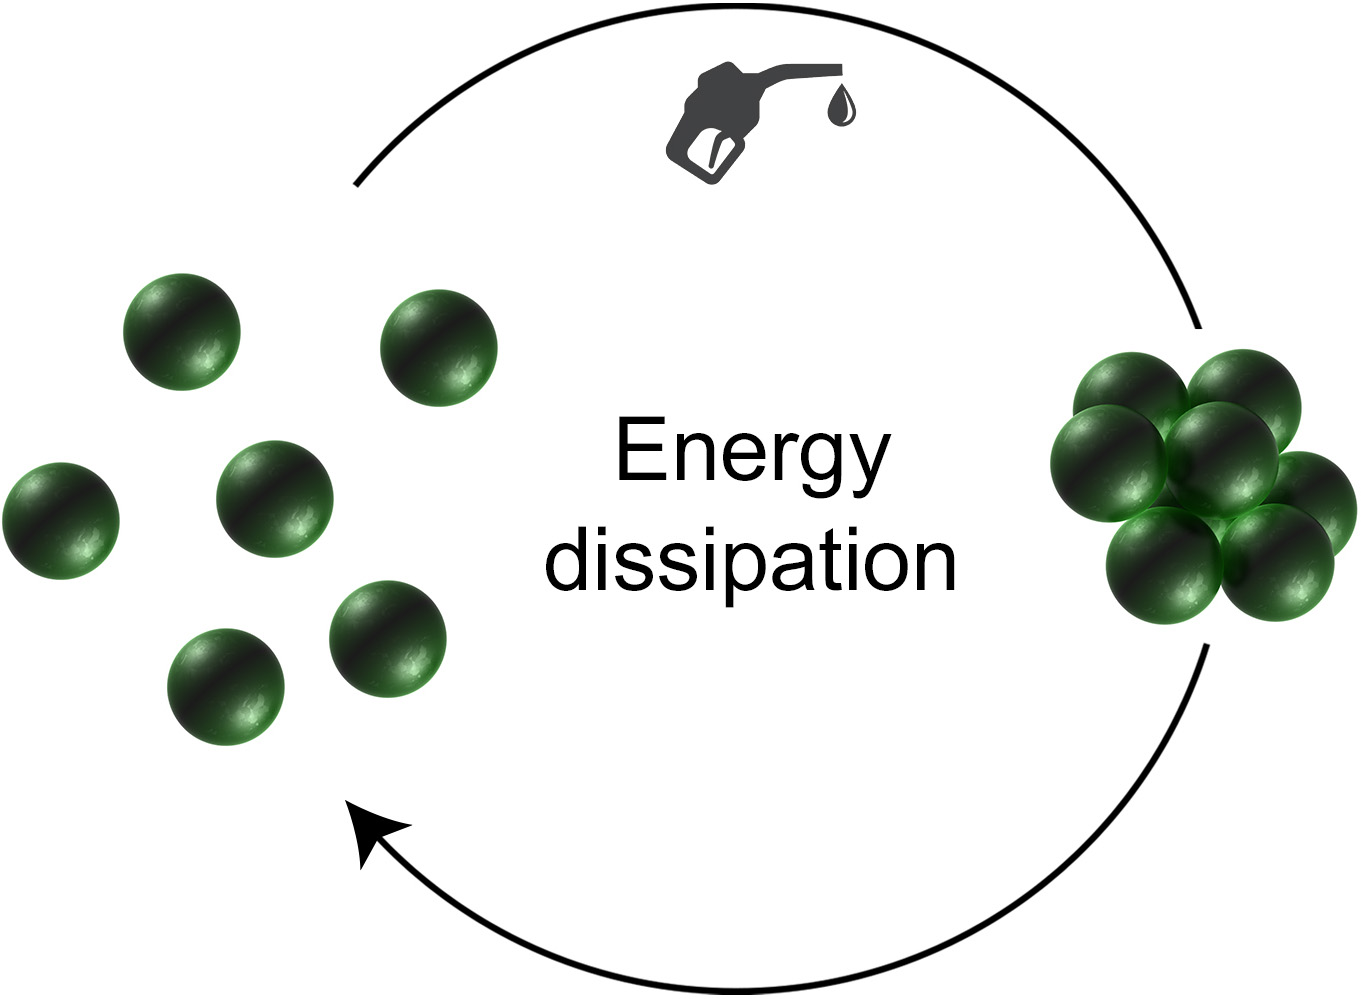 Picture of publication: Dissipative Self-Assembly Driven by the Consumption of Chemical Fuels